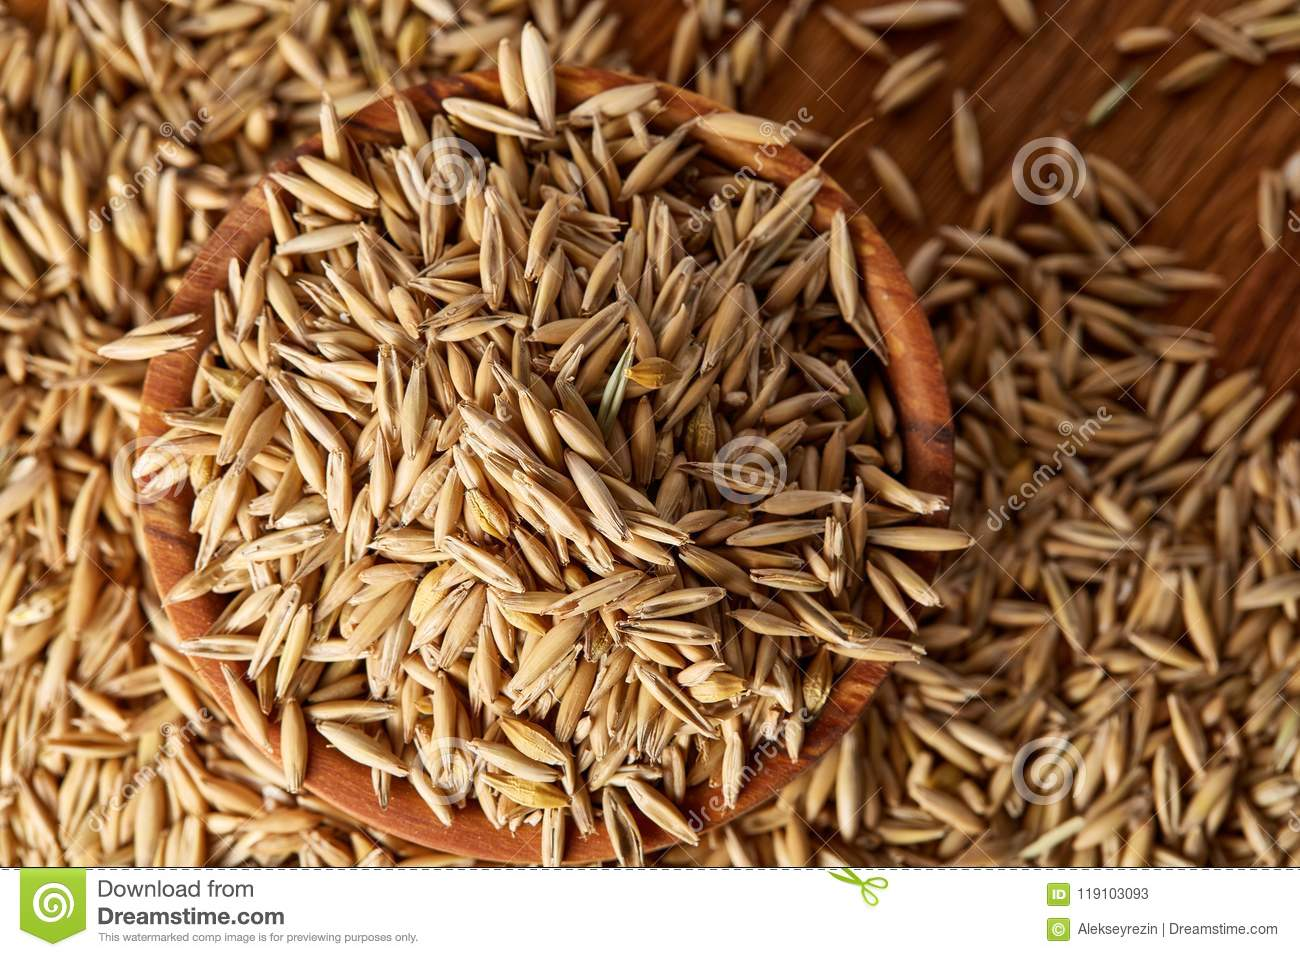 hight resolution of pile of unpeeled oat grains on wooden background top view close up macro selective focus shallow depth of field some copy space dietary food